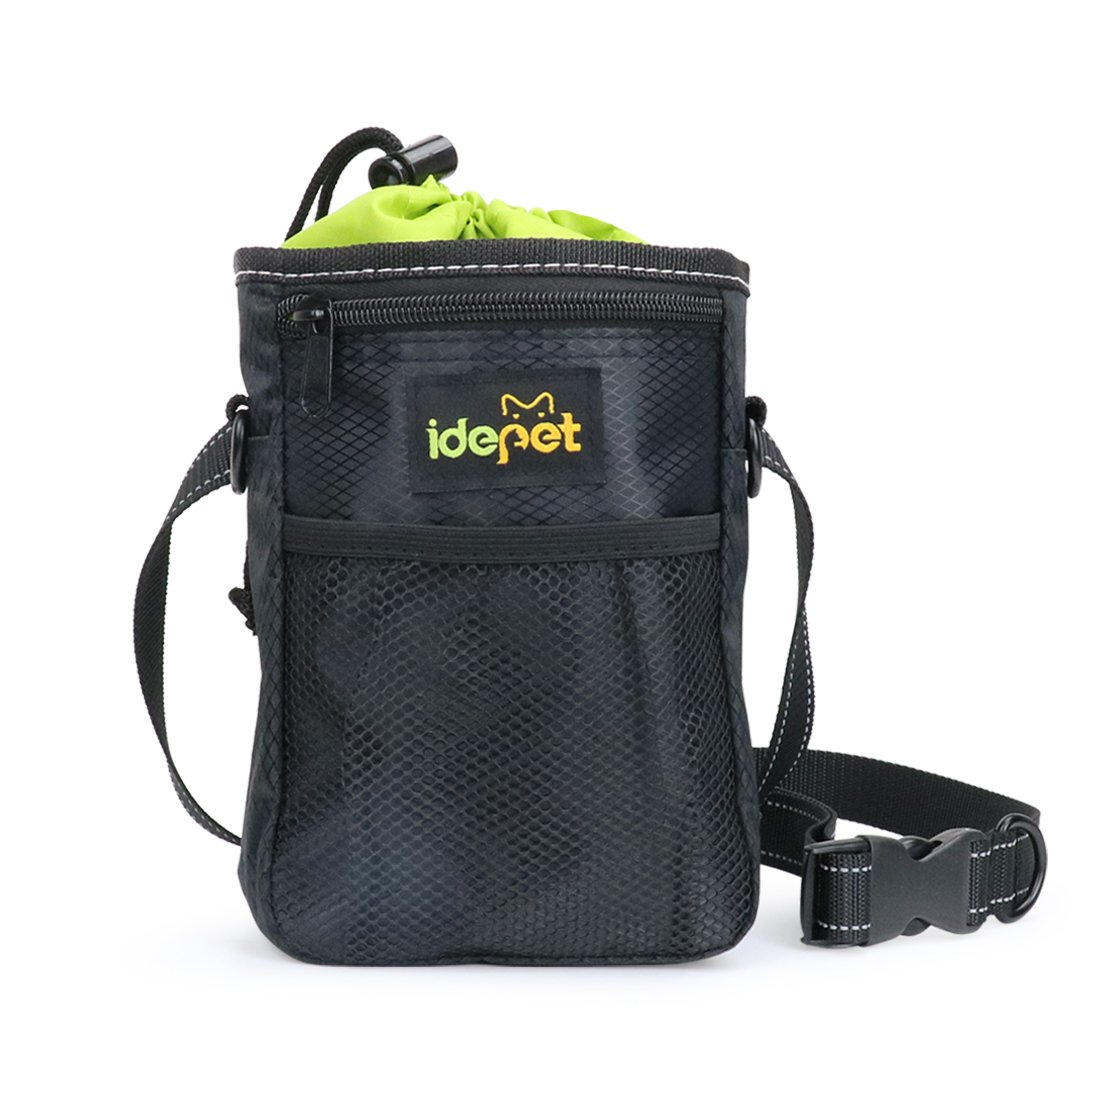 Dog Treat Training Pouch with Waste Bags Dispenser, Waterproof Pet Training Bag, Adjustable Dogs Pouch to Carry Dog Training Treats, Toys,Phones, Keys for Walking,and Training By Idepet